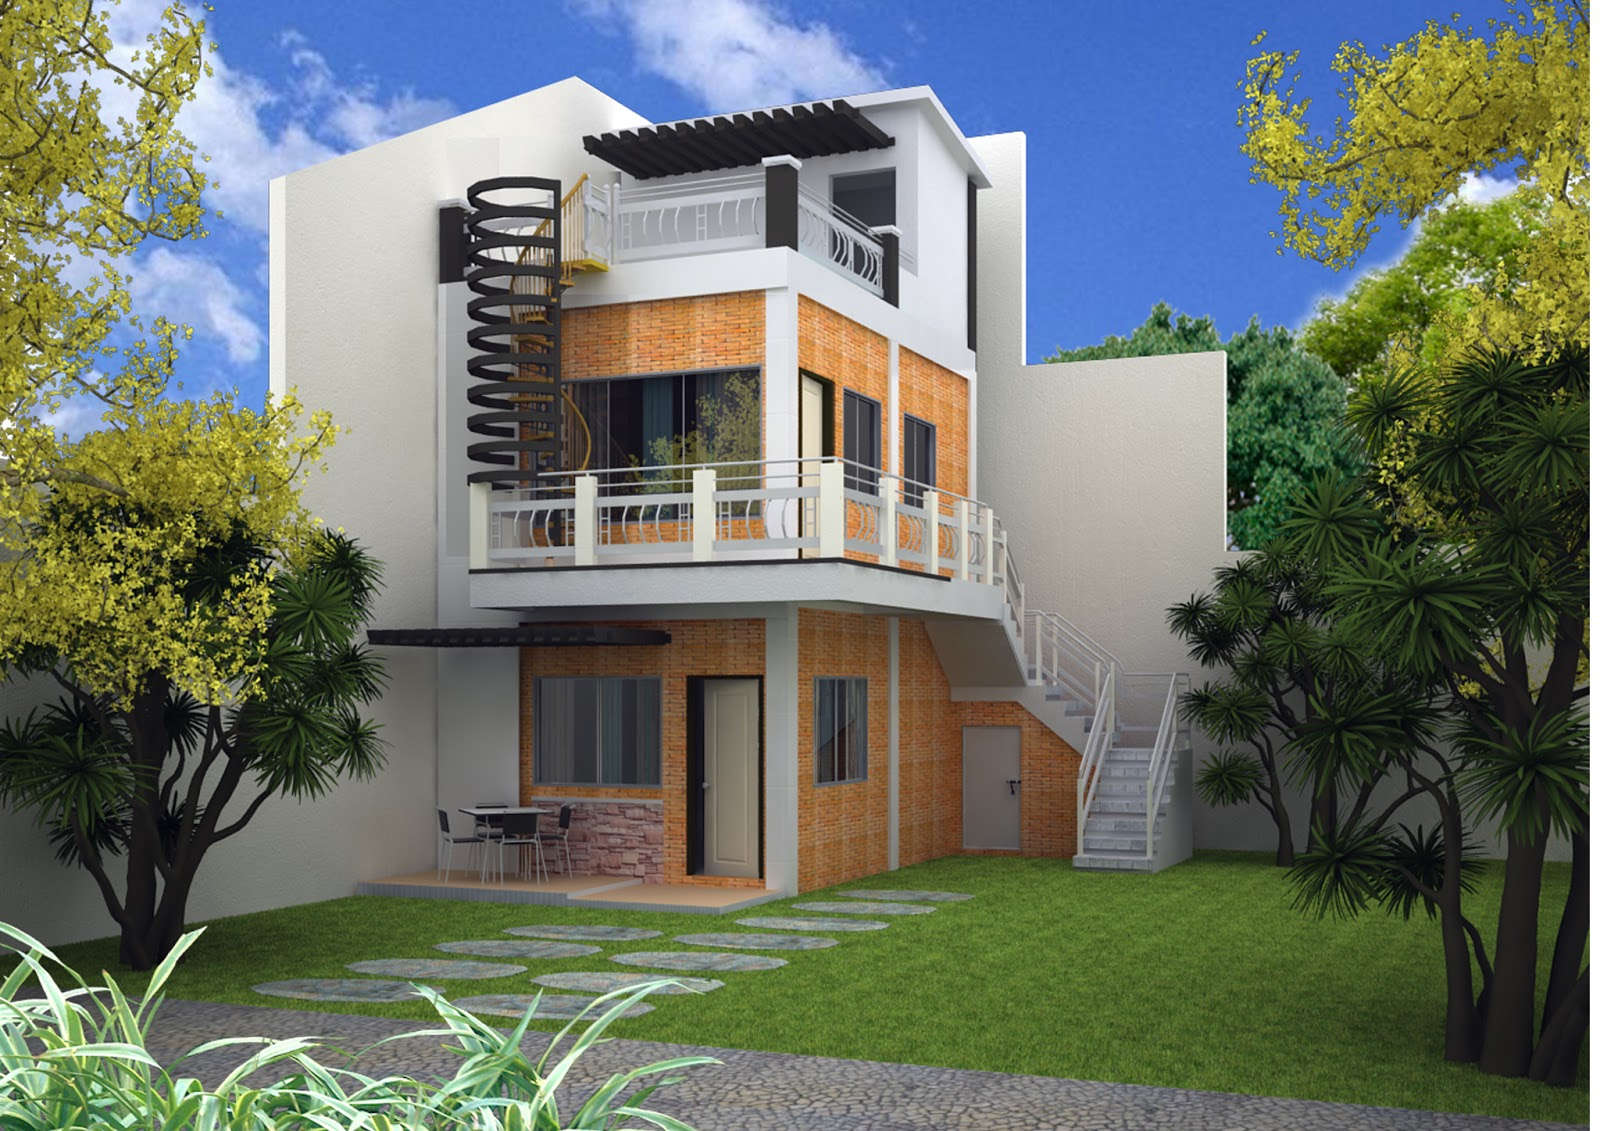 Three story home designs home design ideas for 3 story house design